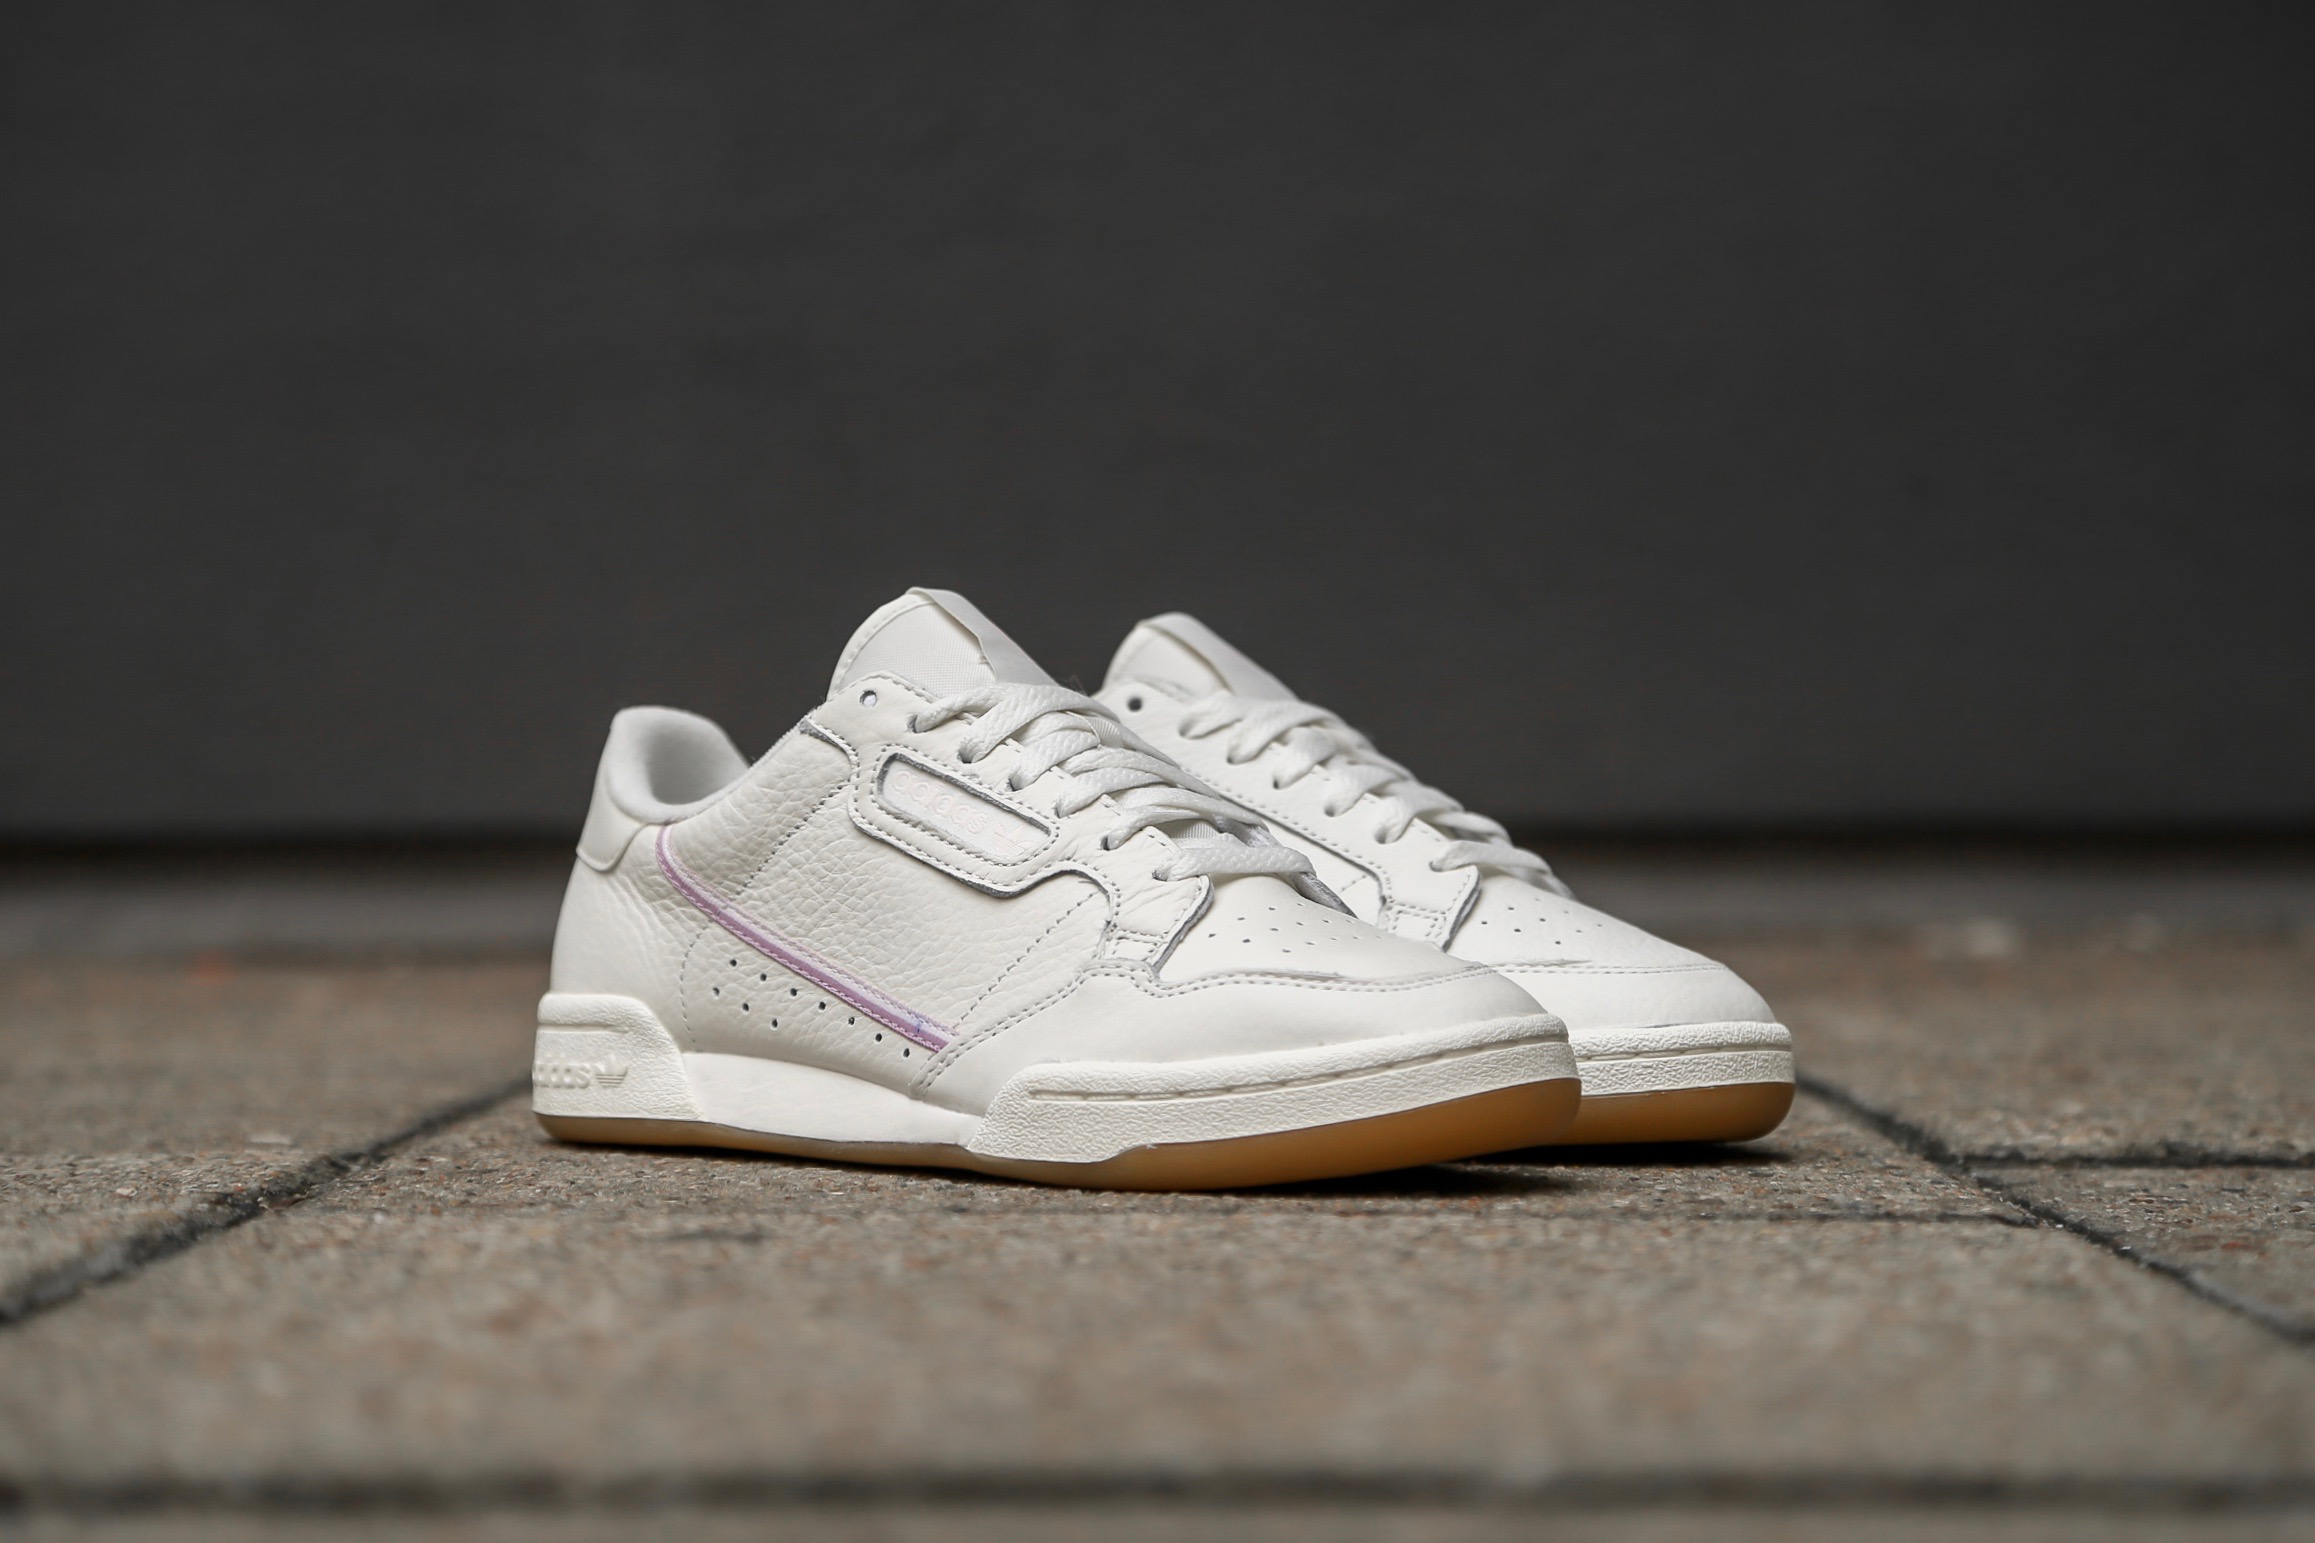 91976e30f92 adidas Originals Continental 80 W – Off White   Orchid Tint   Soft ...